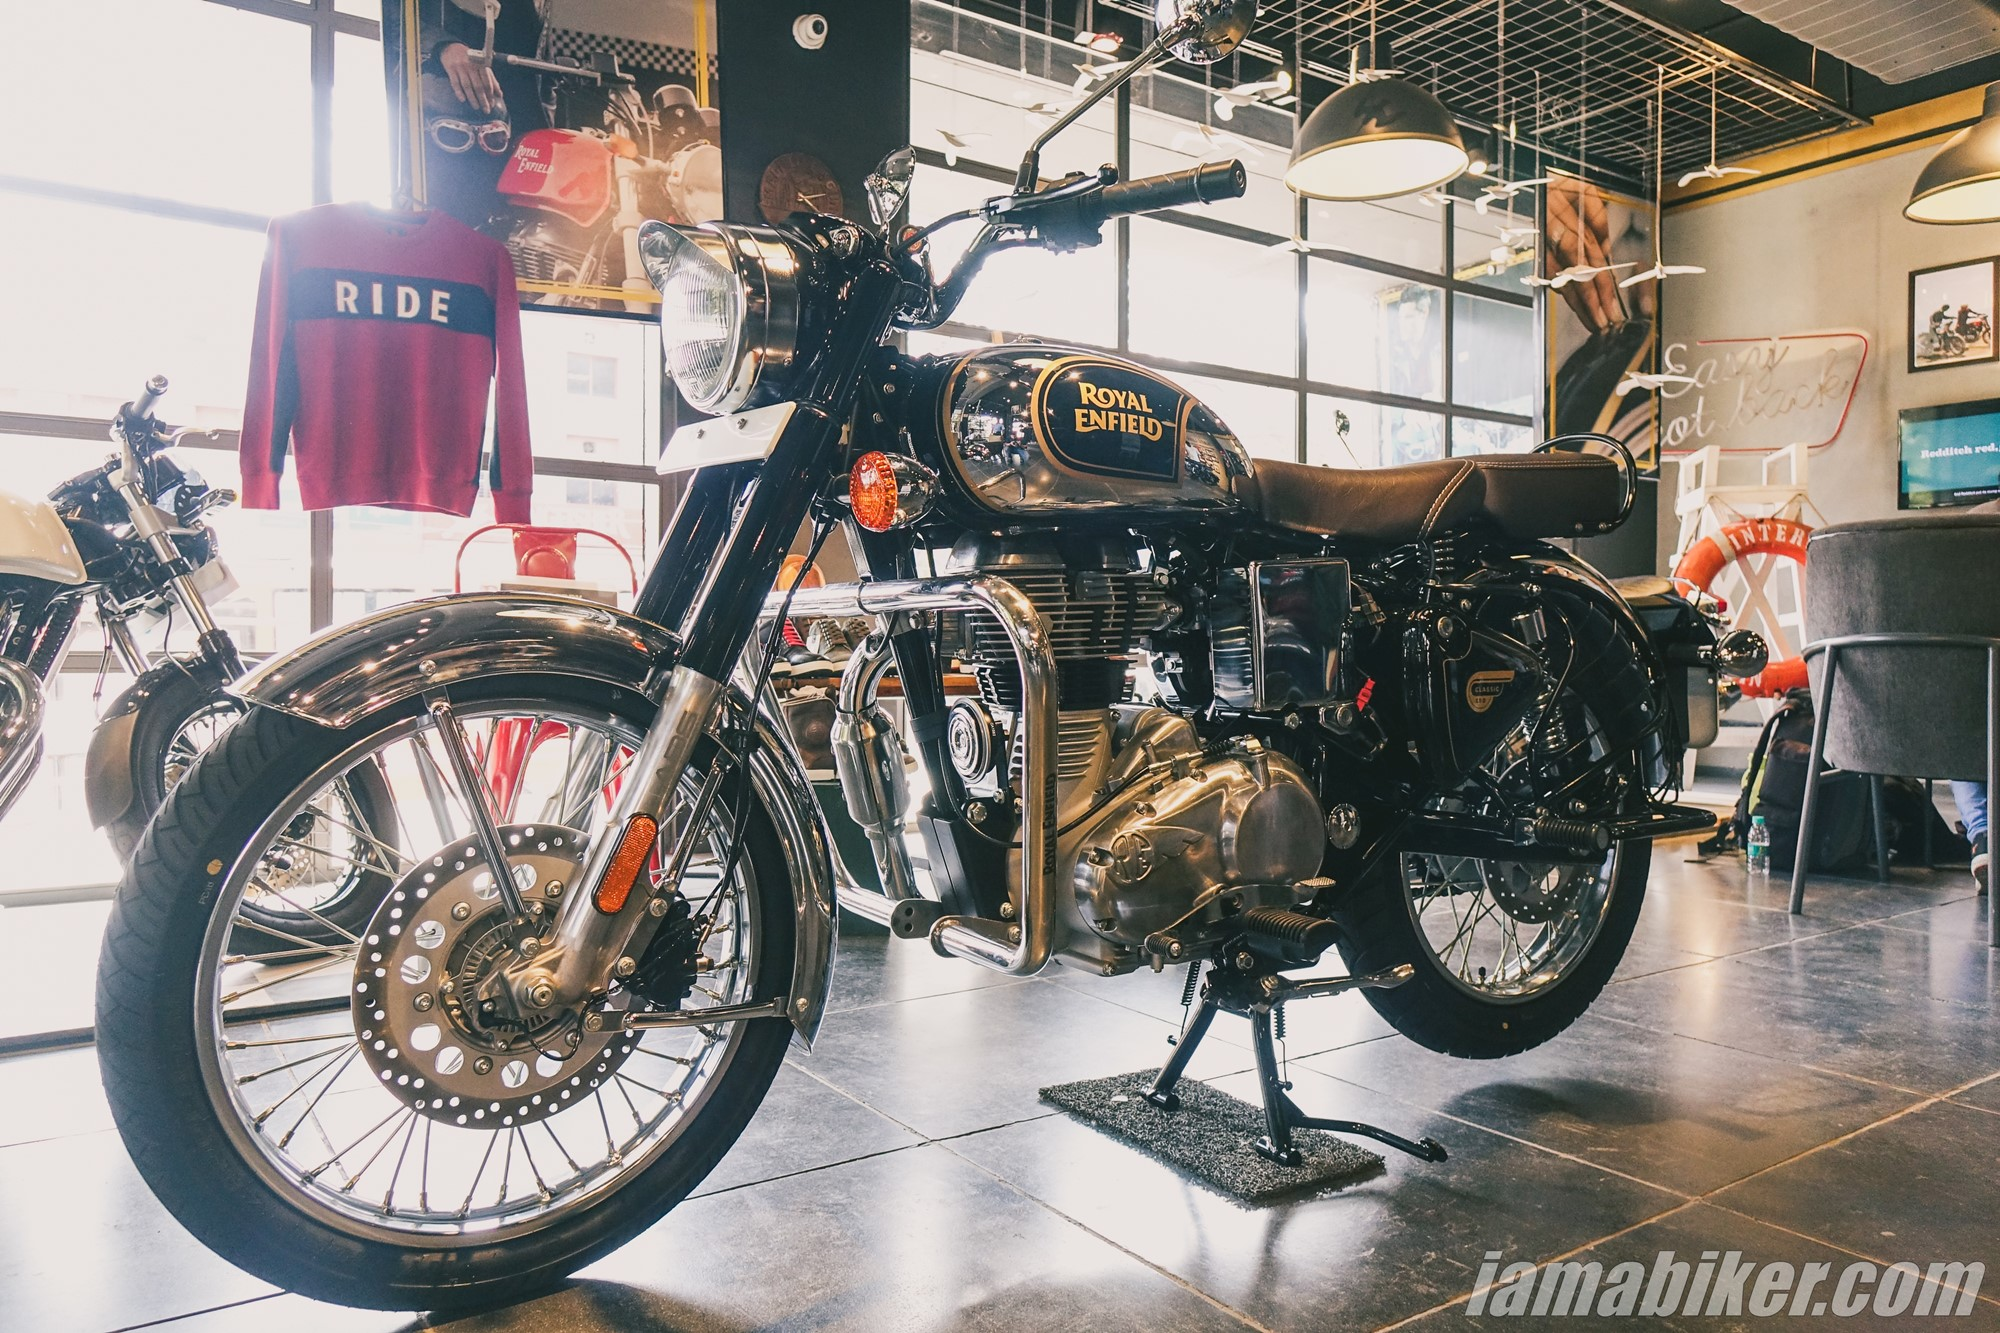 Bs6 Royal Enfield Classic 350 Chrome And Stealth Edition Image Gallery Iamabiker Everything Motorcycle